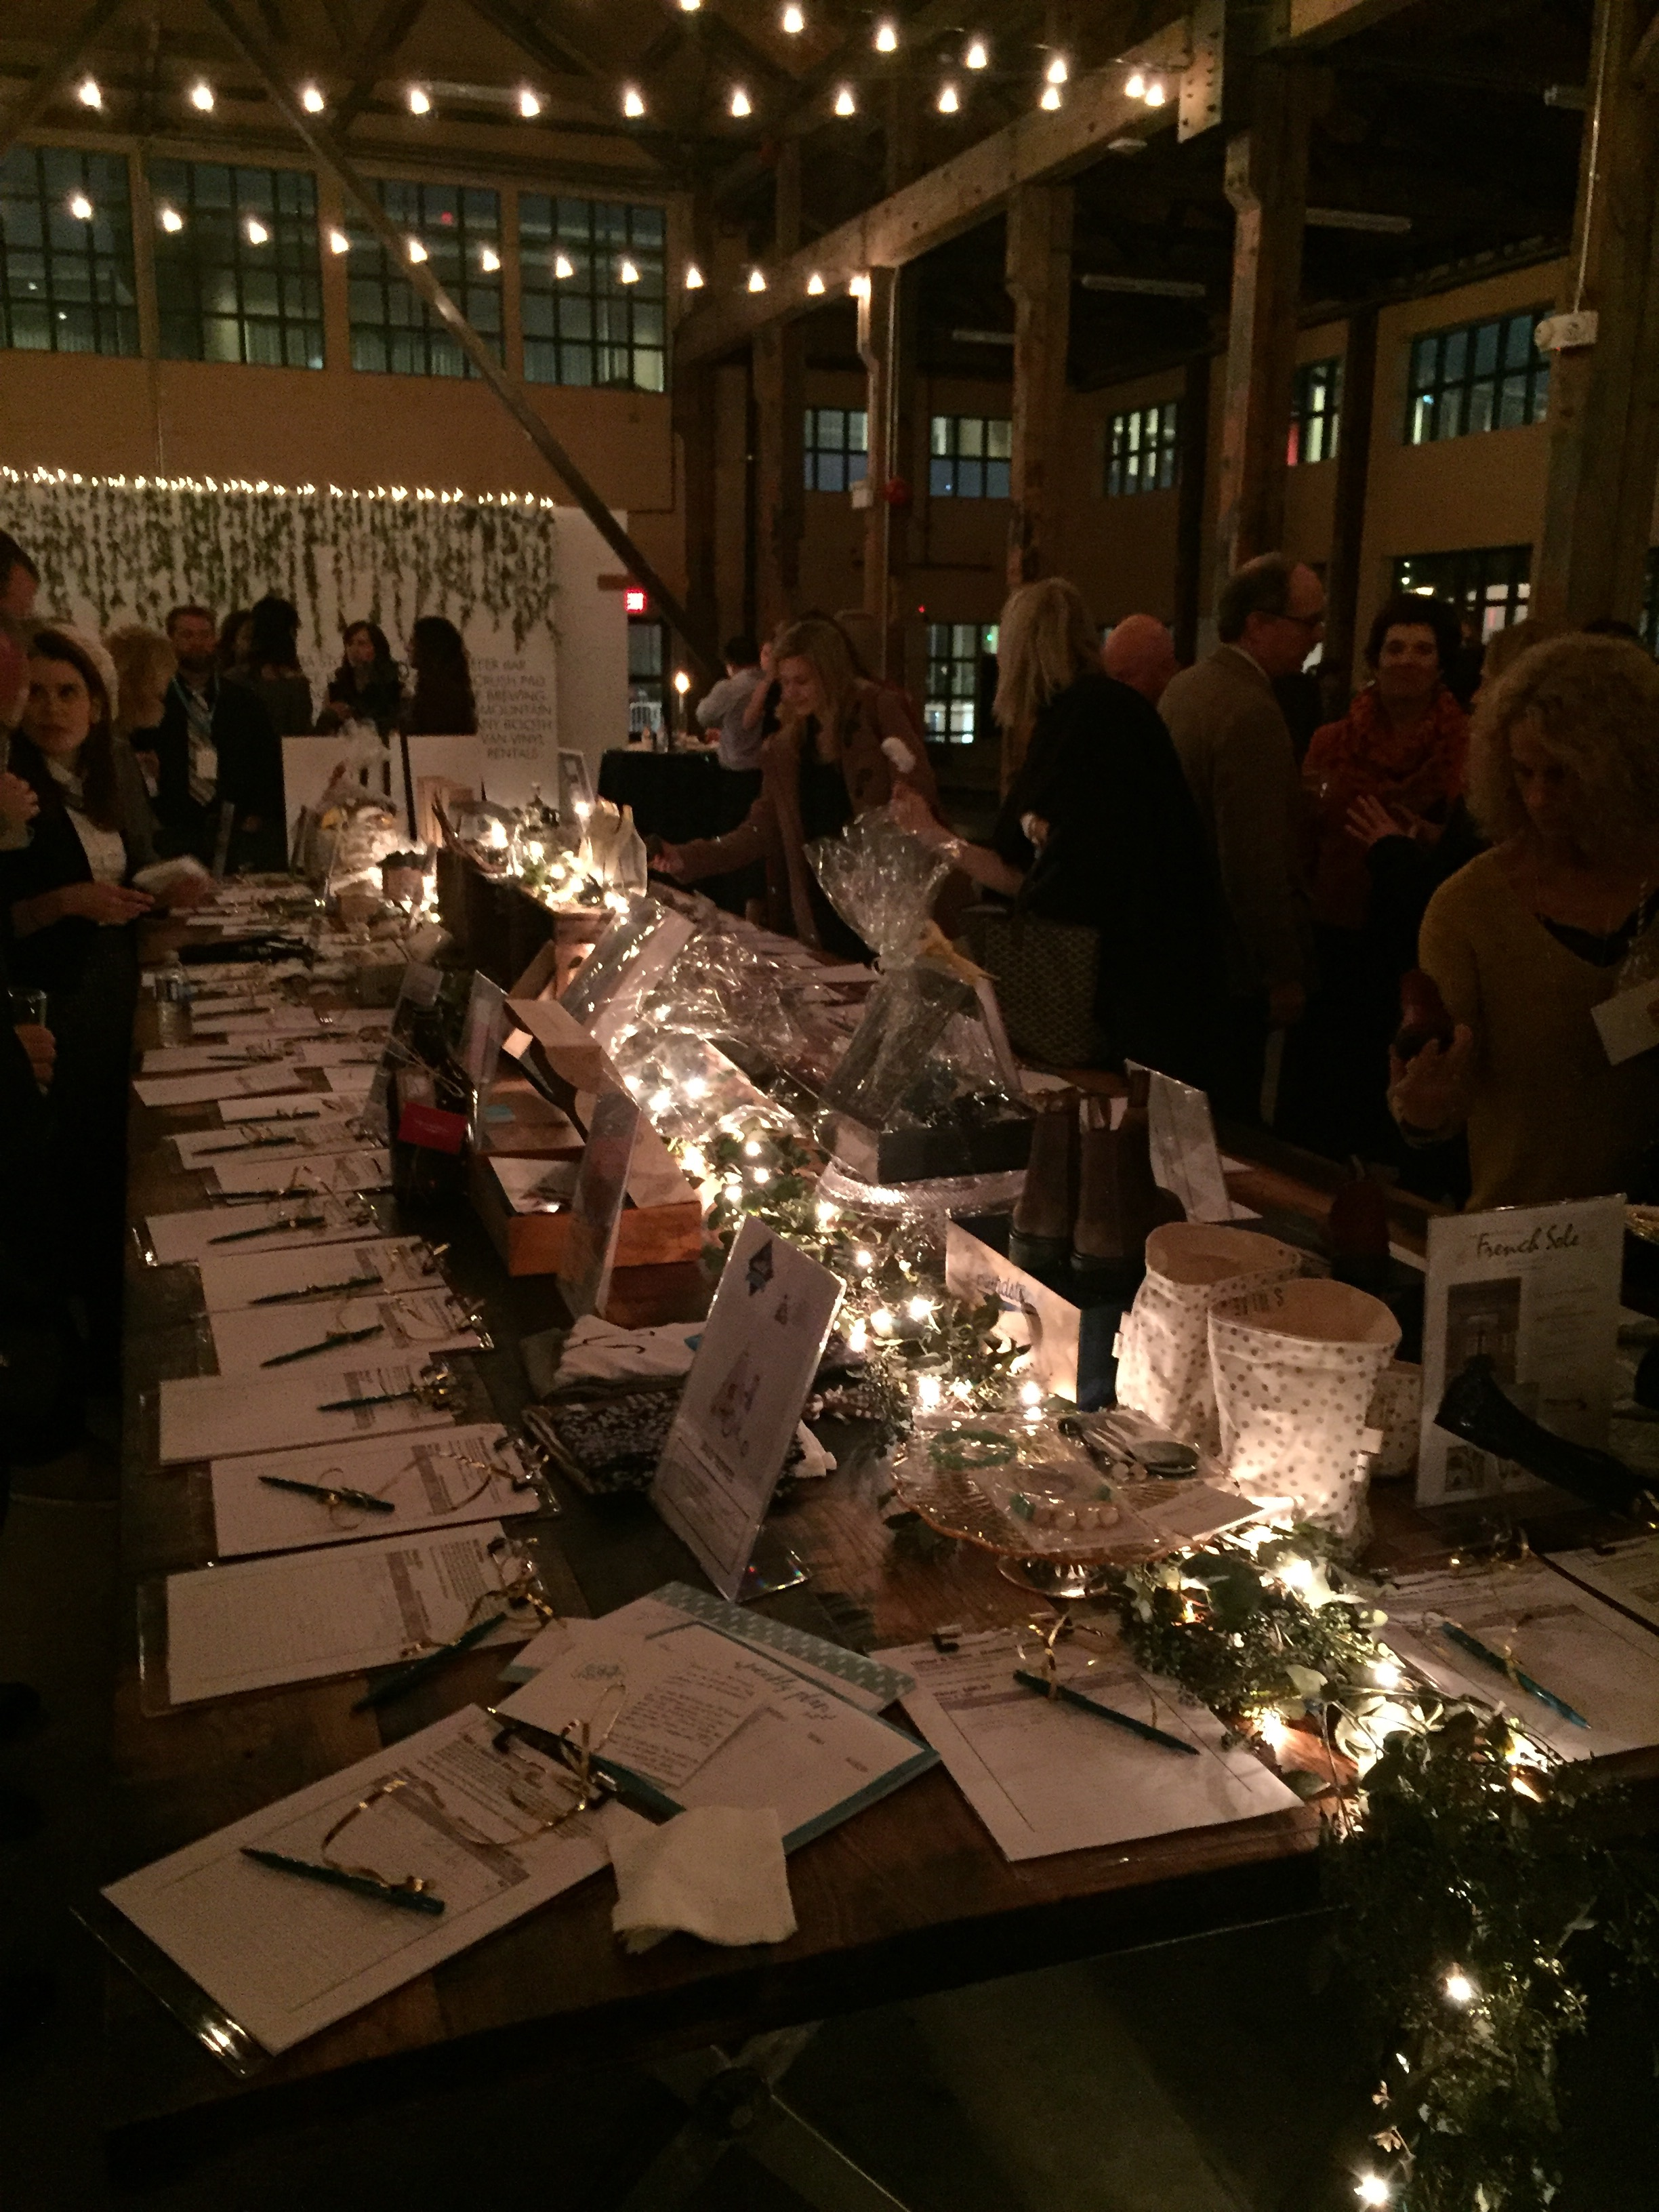 Silent auction for a worthy cause.